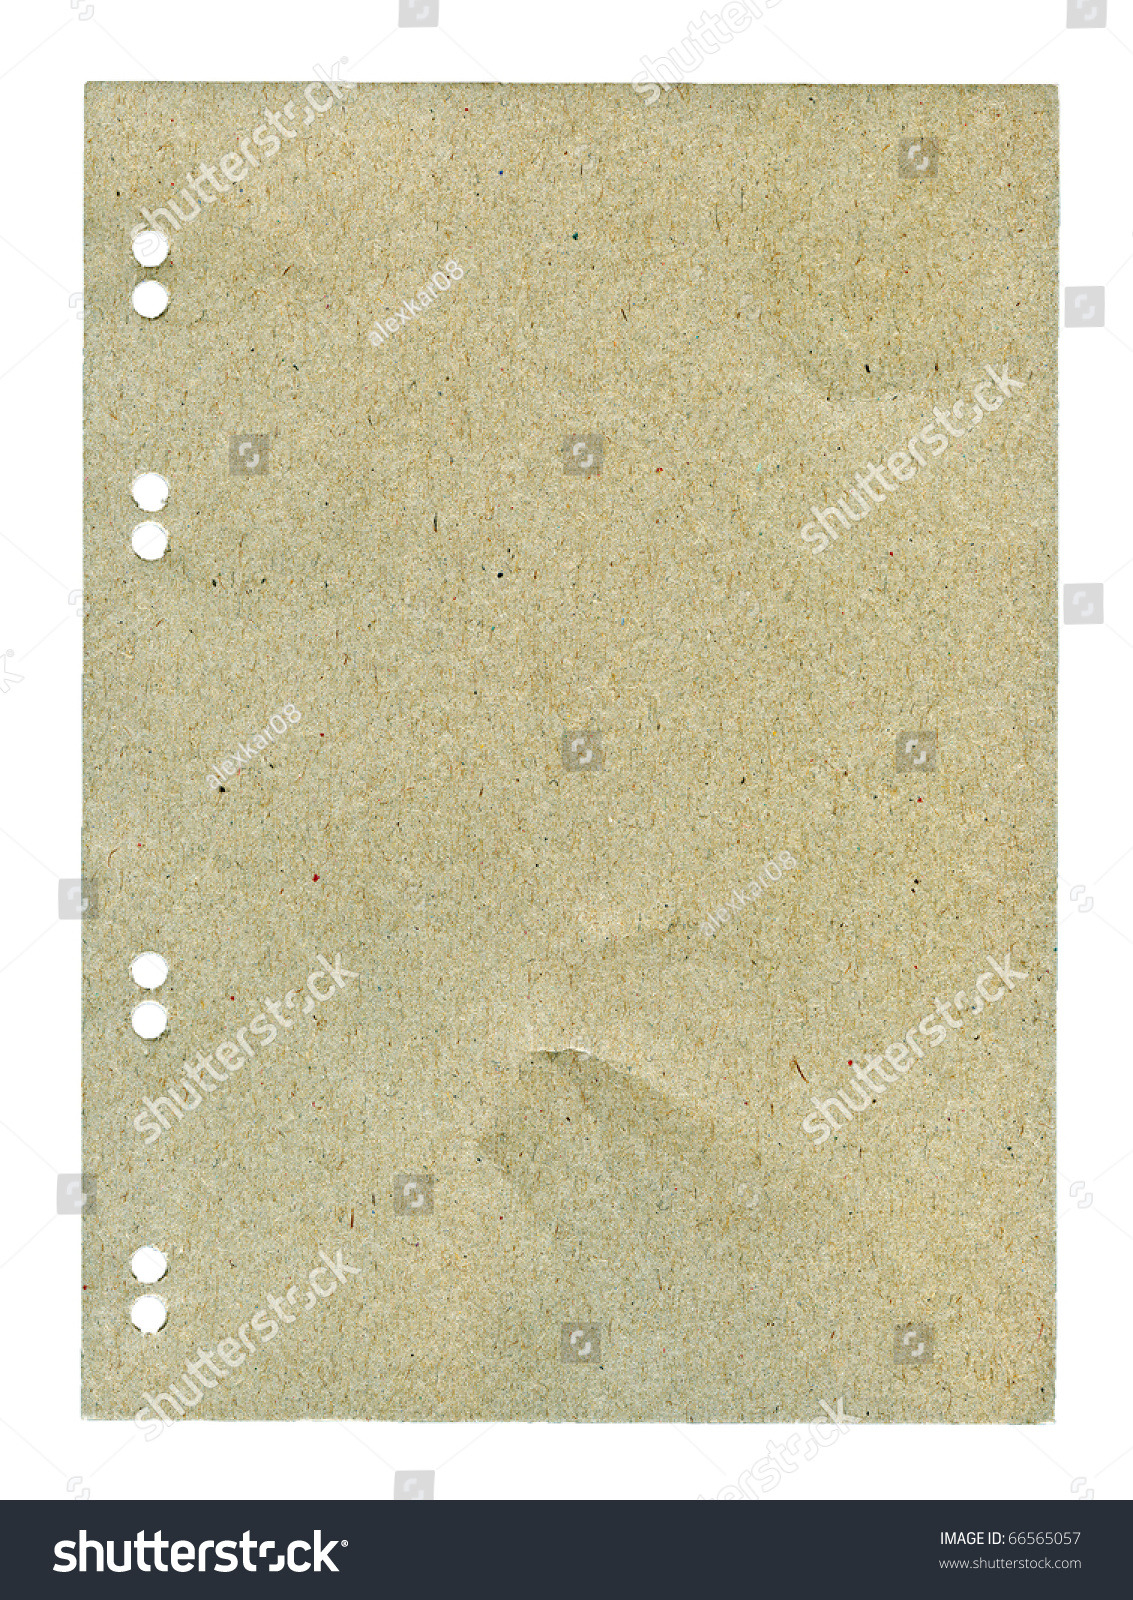 Textured grainy paper with natural fiber parts isolated #66565057